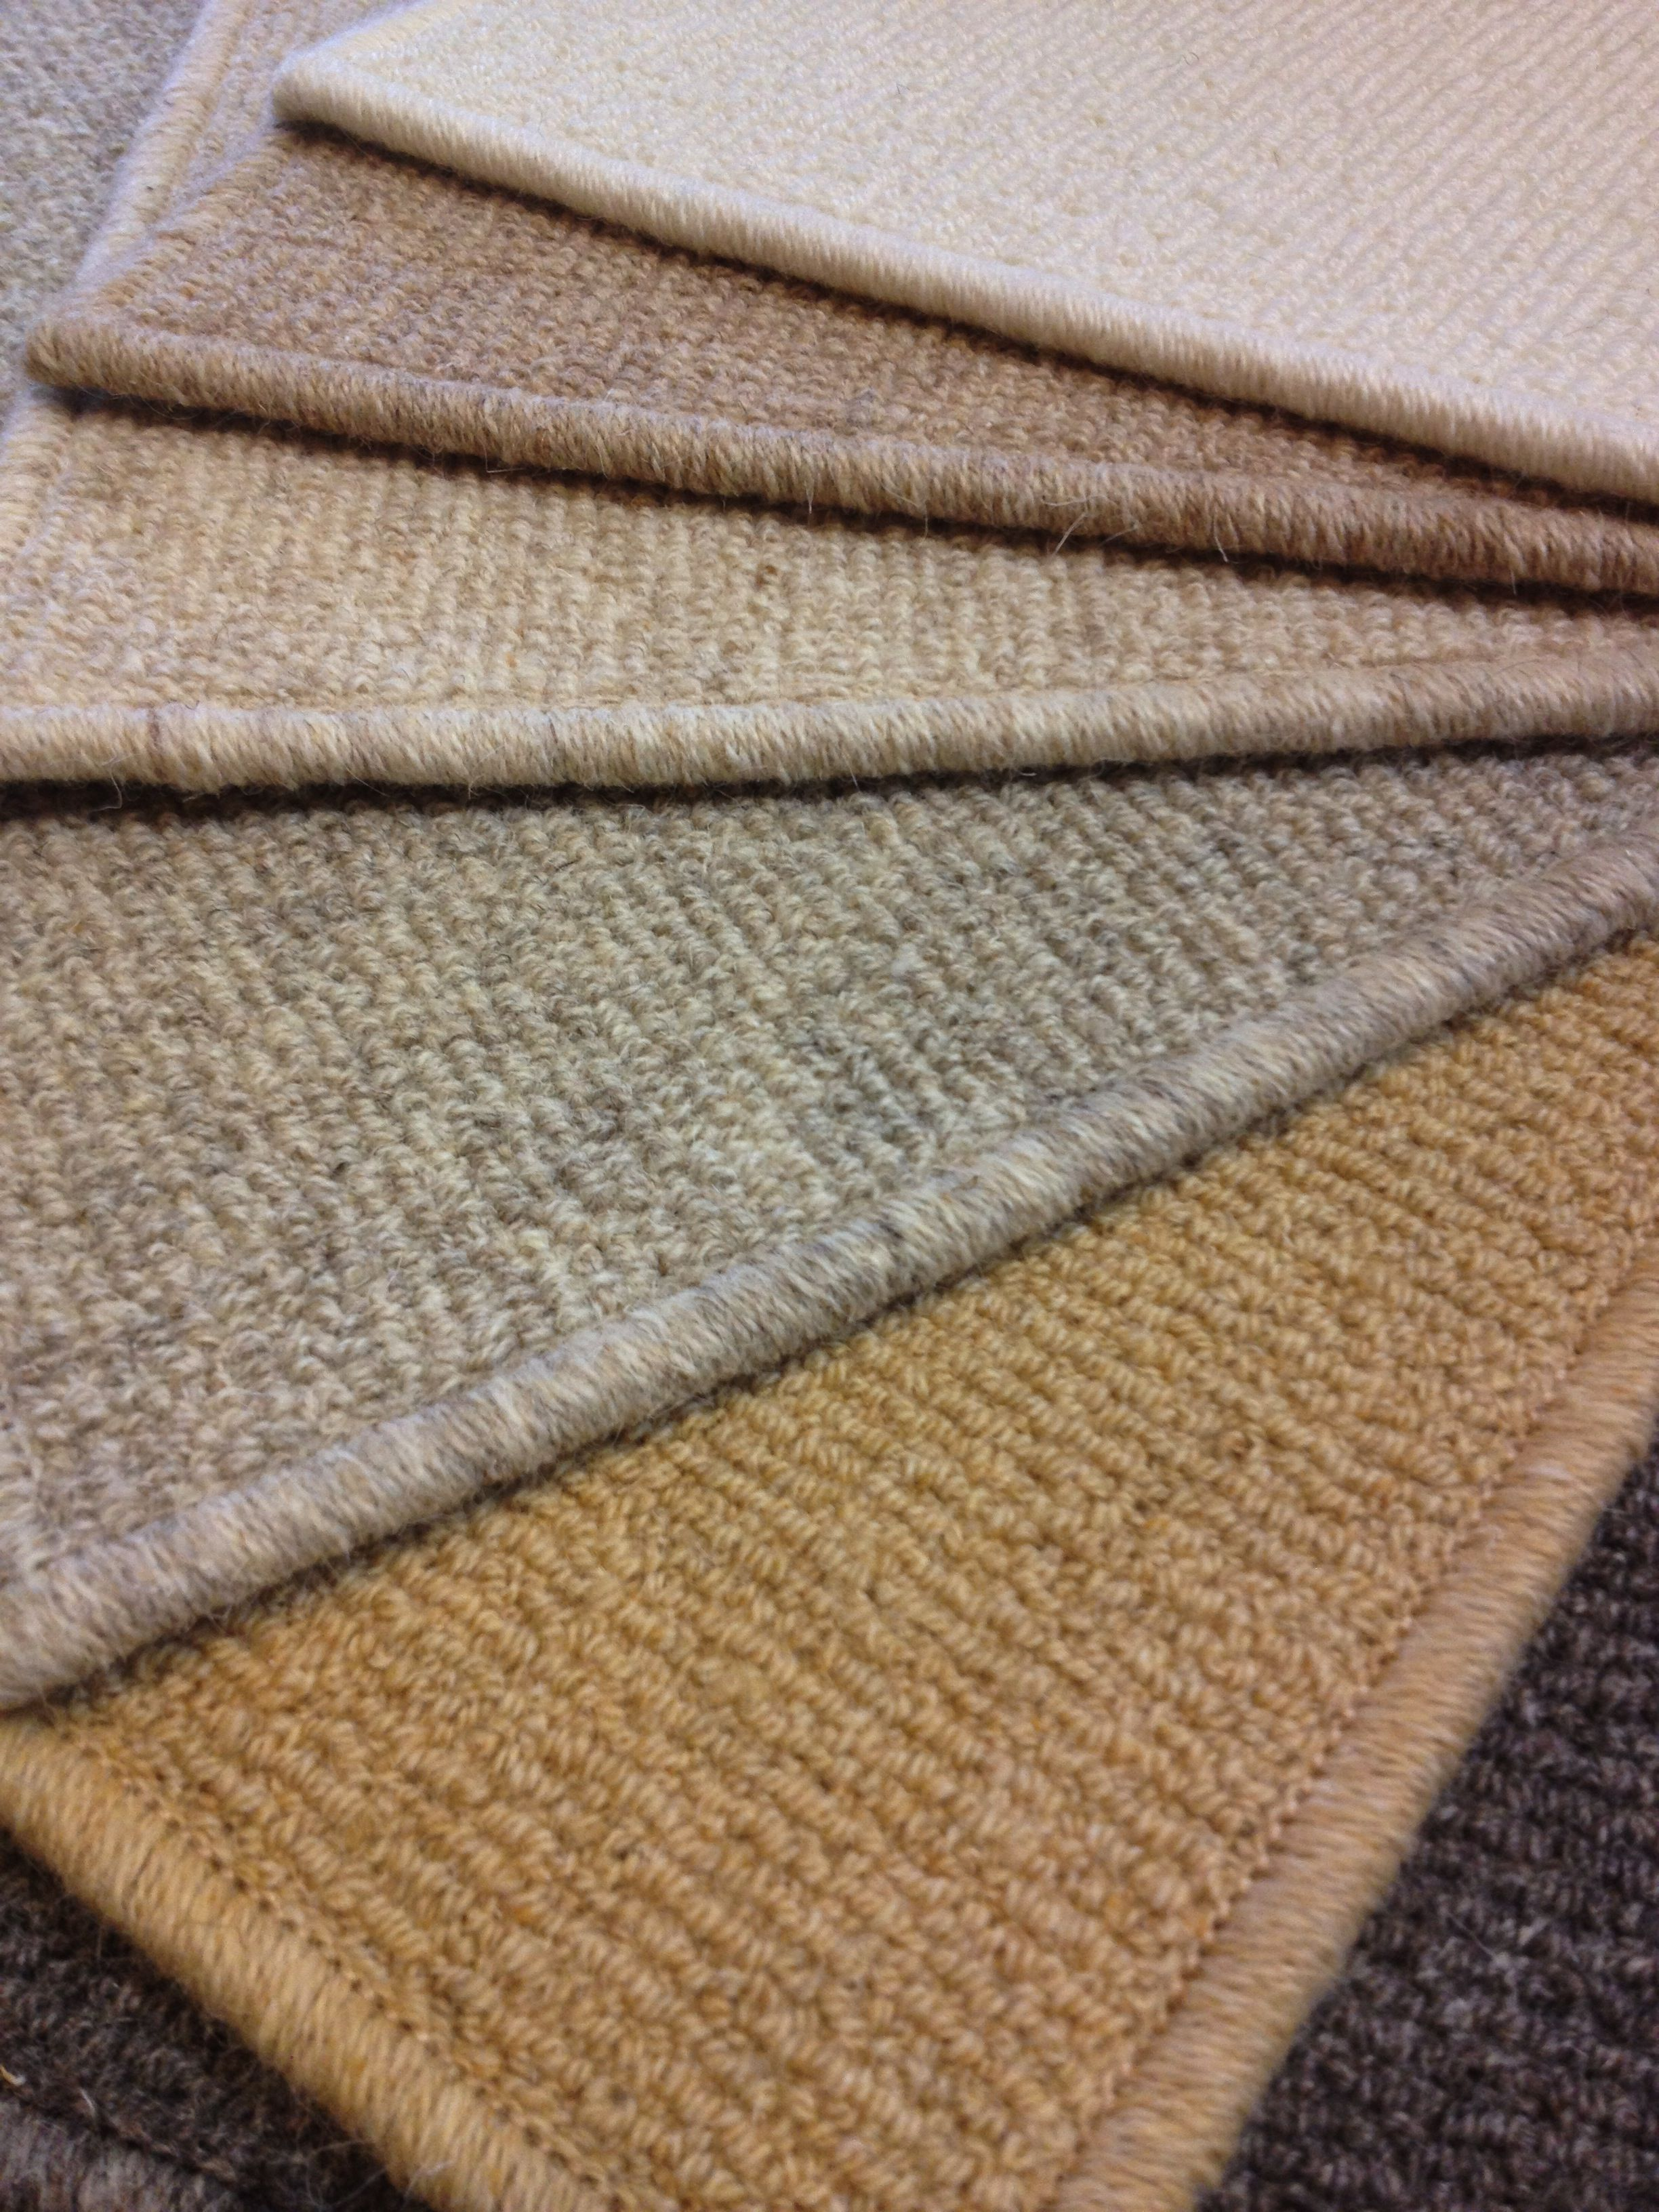 Masland Heatherpoint Natural Un Dyed British Wool Carpet Available At Hemphill S Rugs Carpets Costa Mesa Ca Www Rugsandc Wool Carpet Rugs On Carpet Carpet